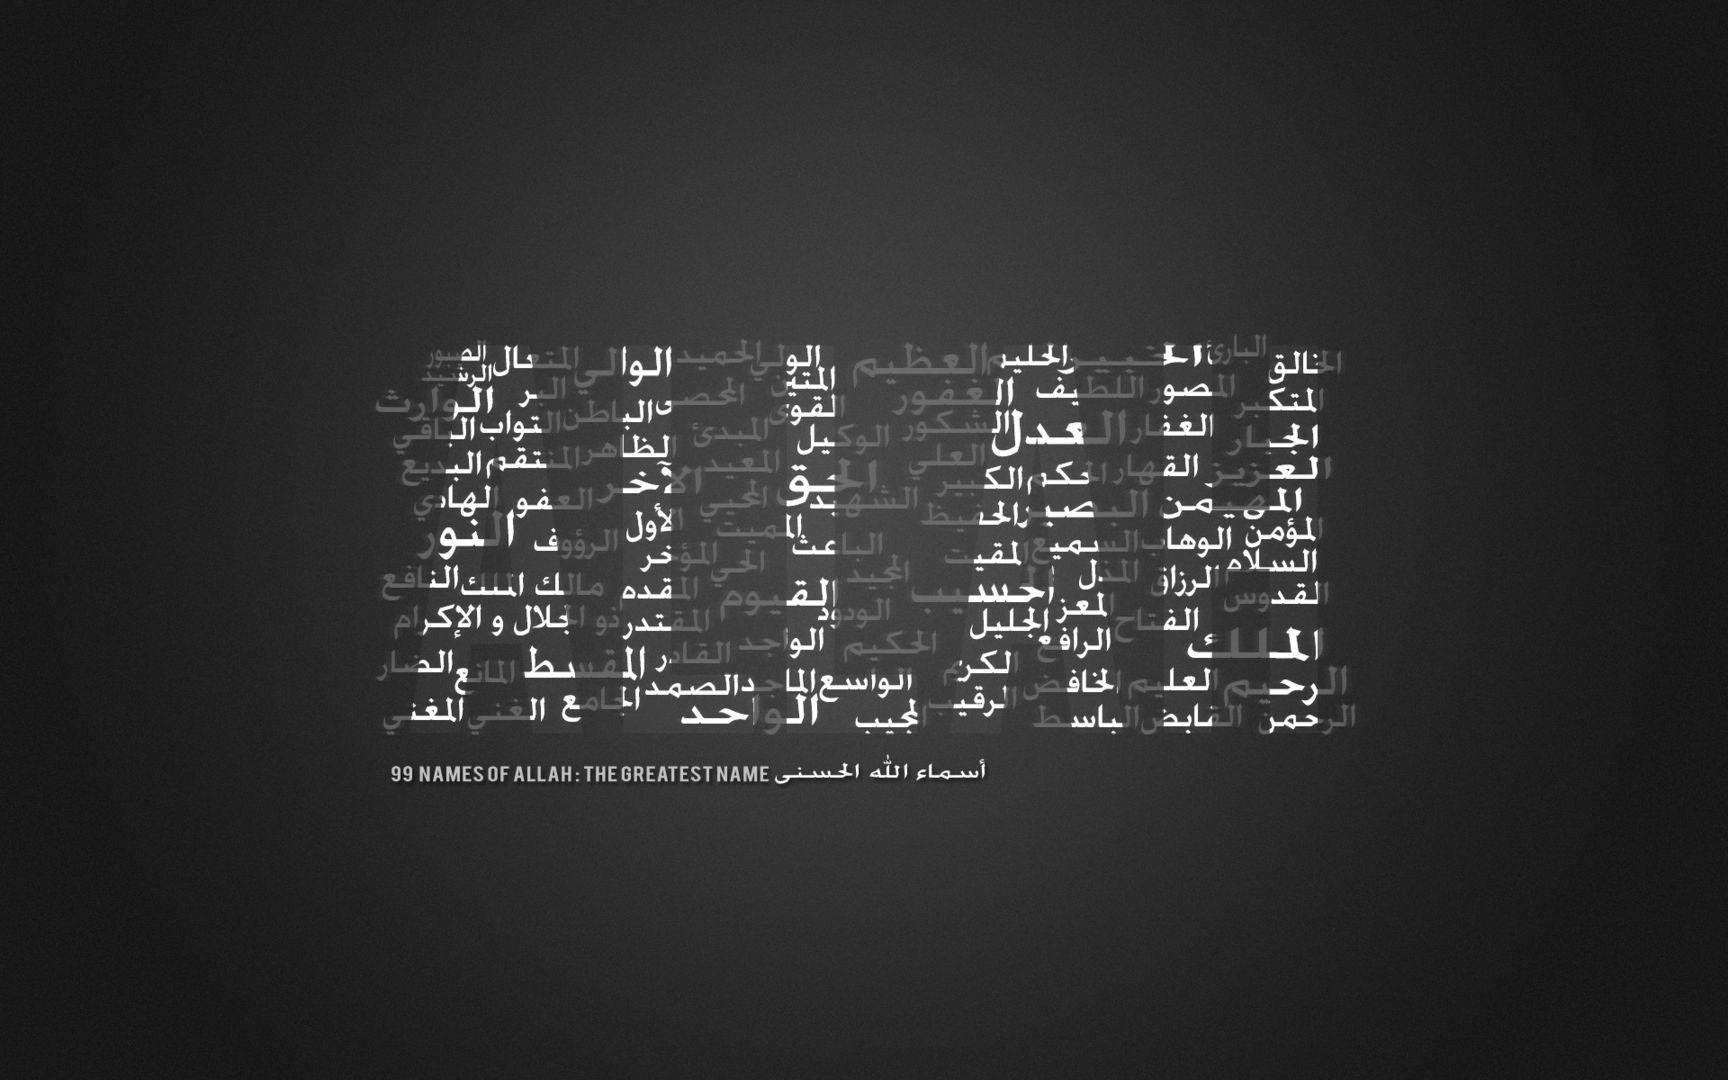 99 Names of Allah wallpaper #